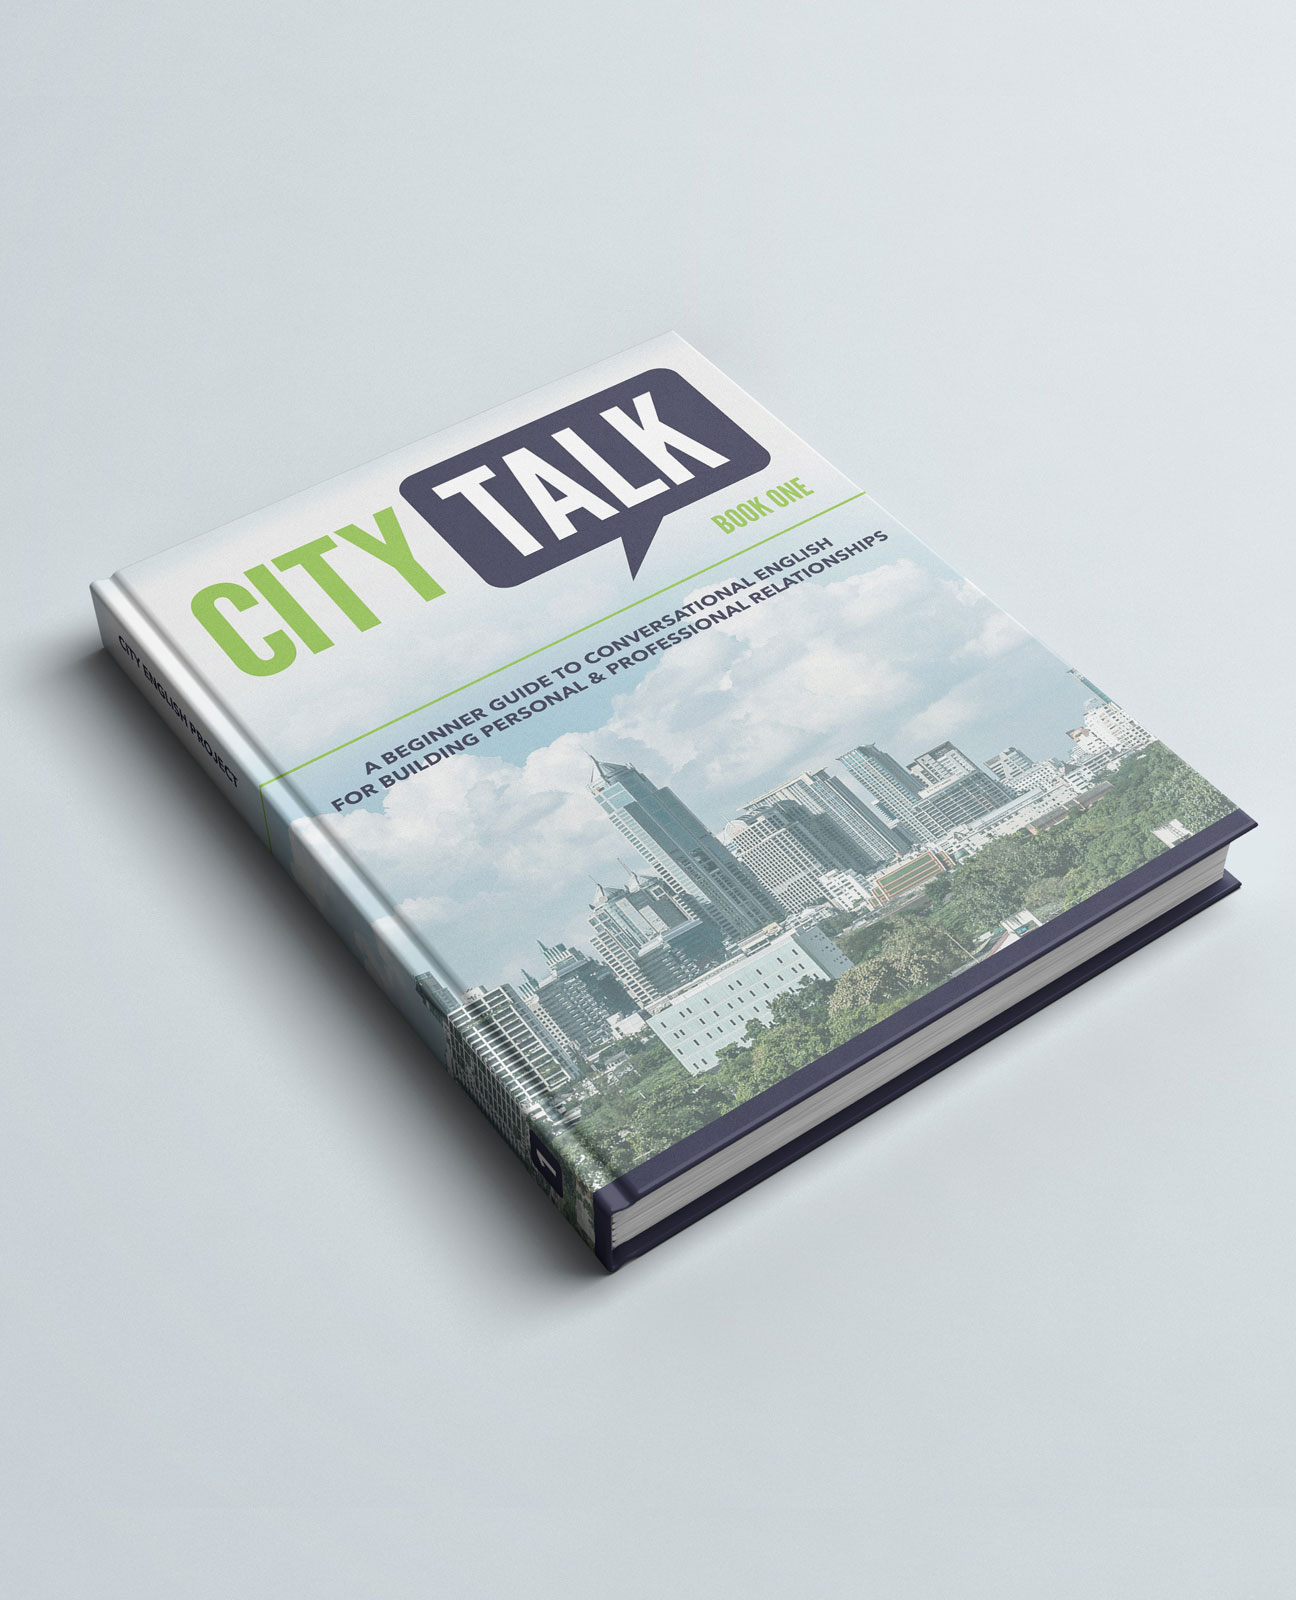 City Talk // Thai Based Language Learning Centre Publication